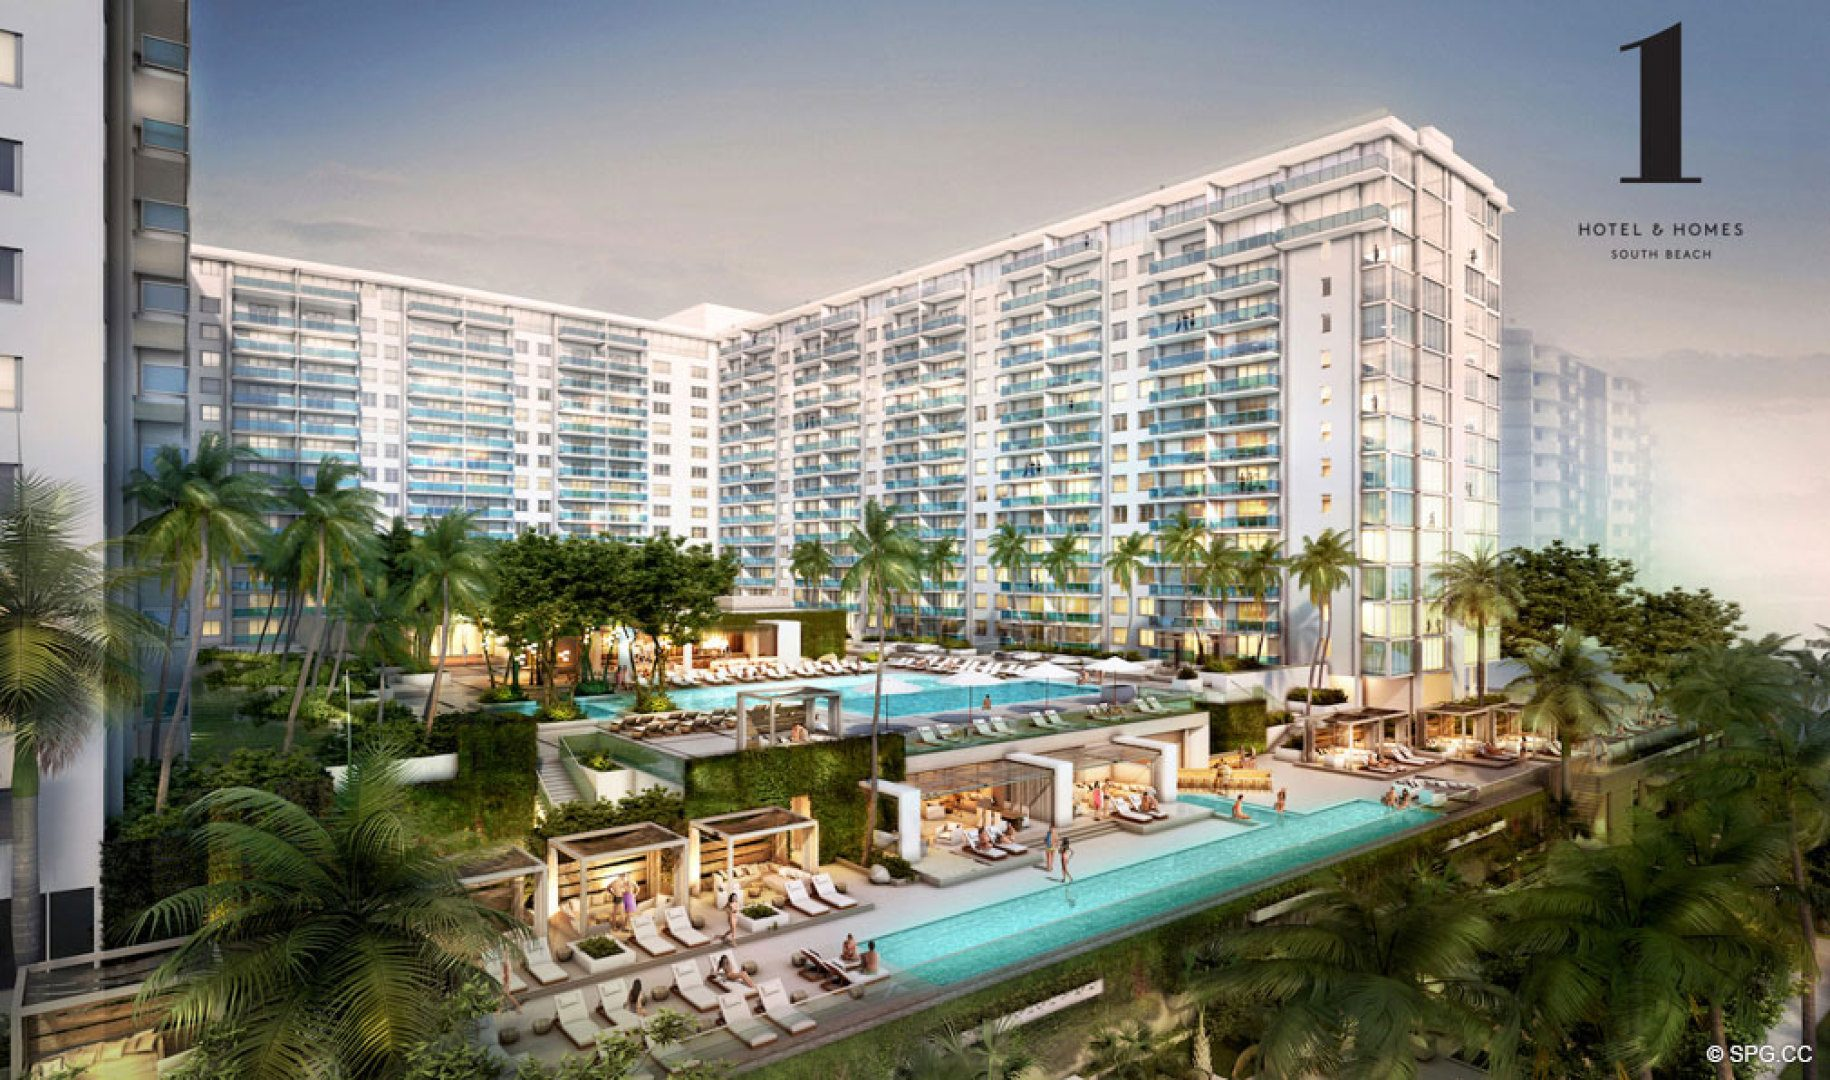 1 Hotel & Homes, New Luxury Oceanfront Condominiums Located at 2399 Collins Ave, Miami Beach, FL 33139